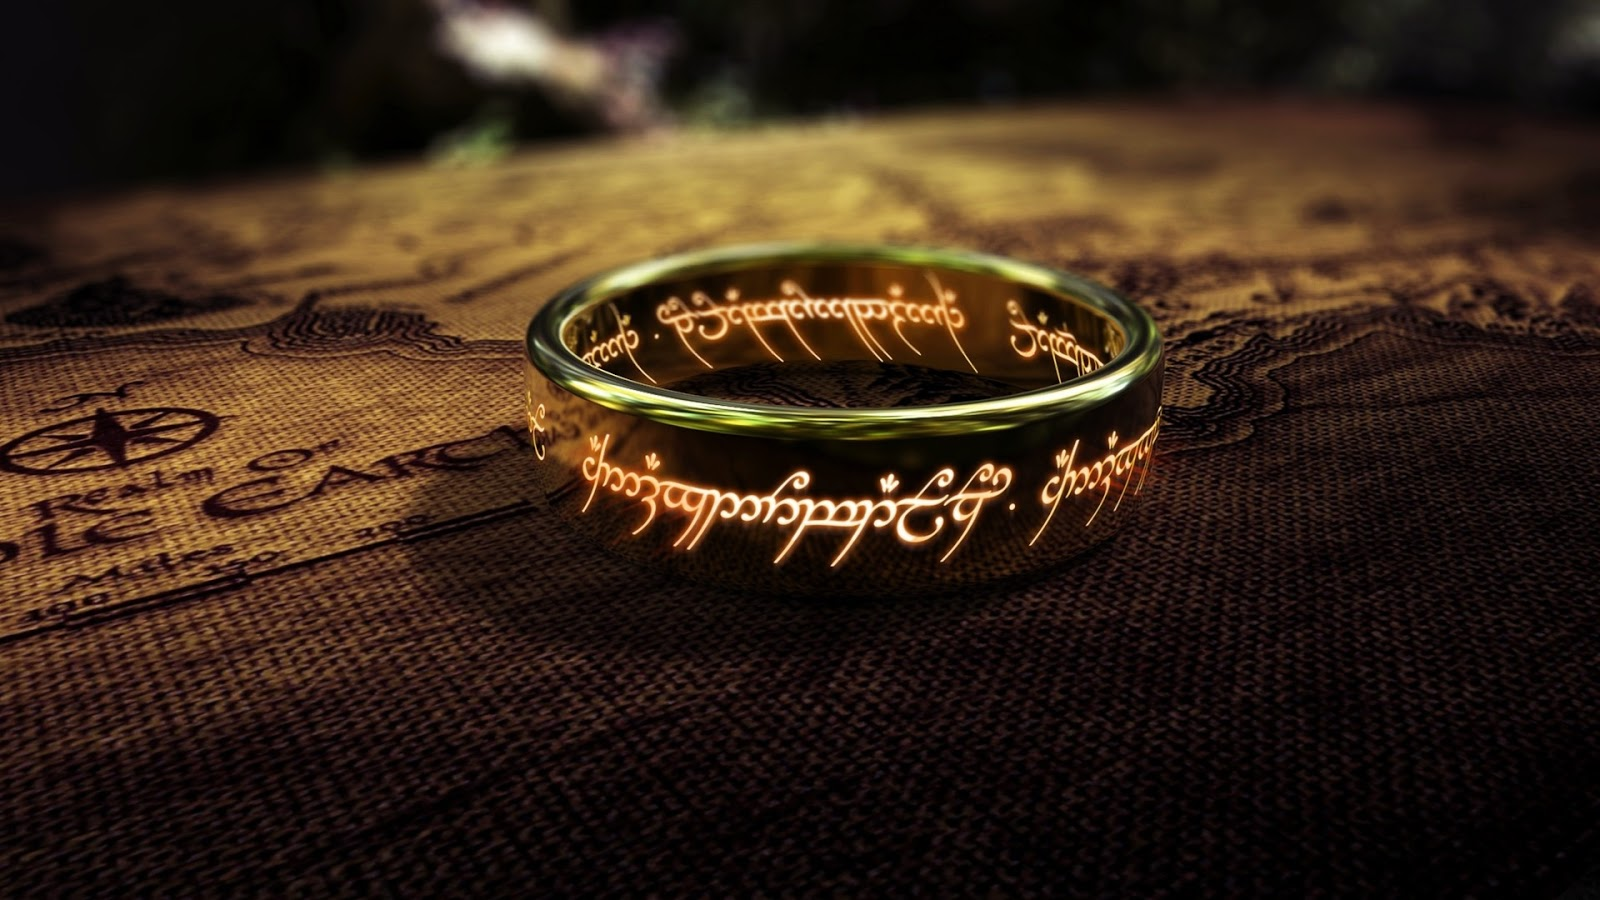 Download The Lord Of The Rings Wallpaper For Desktop and Mac Free